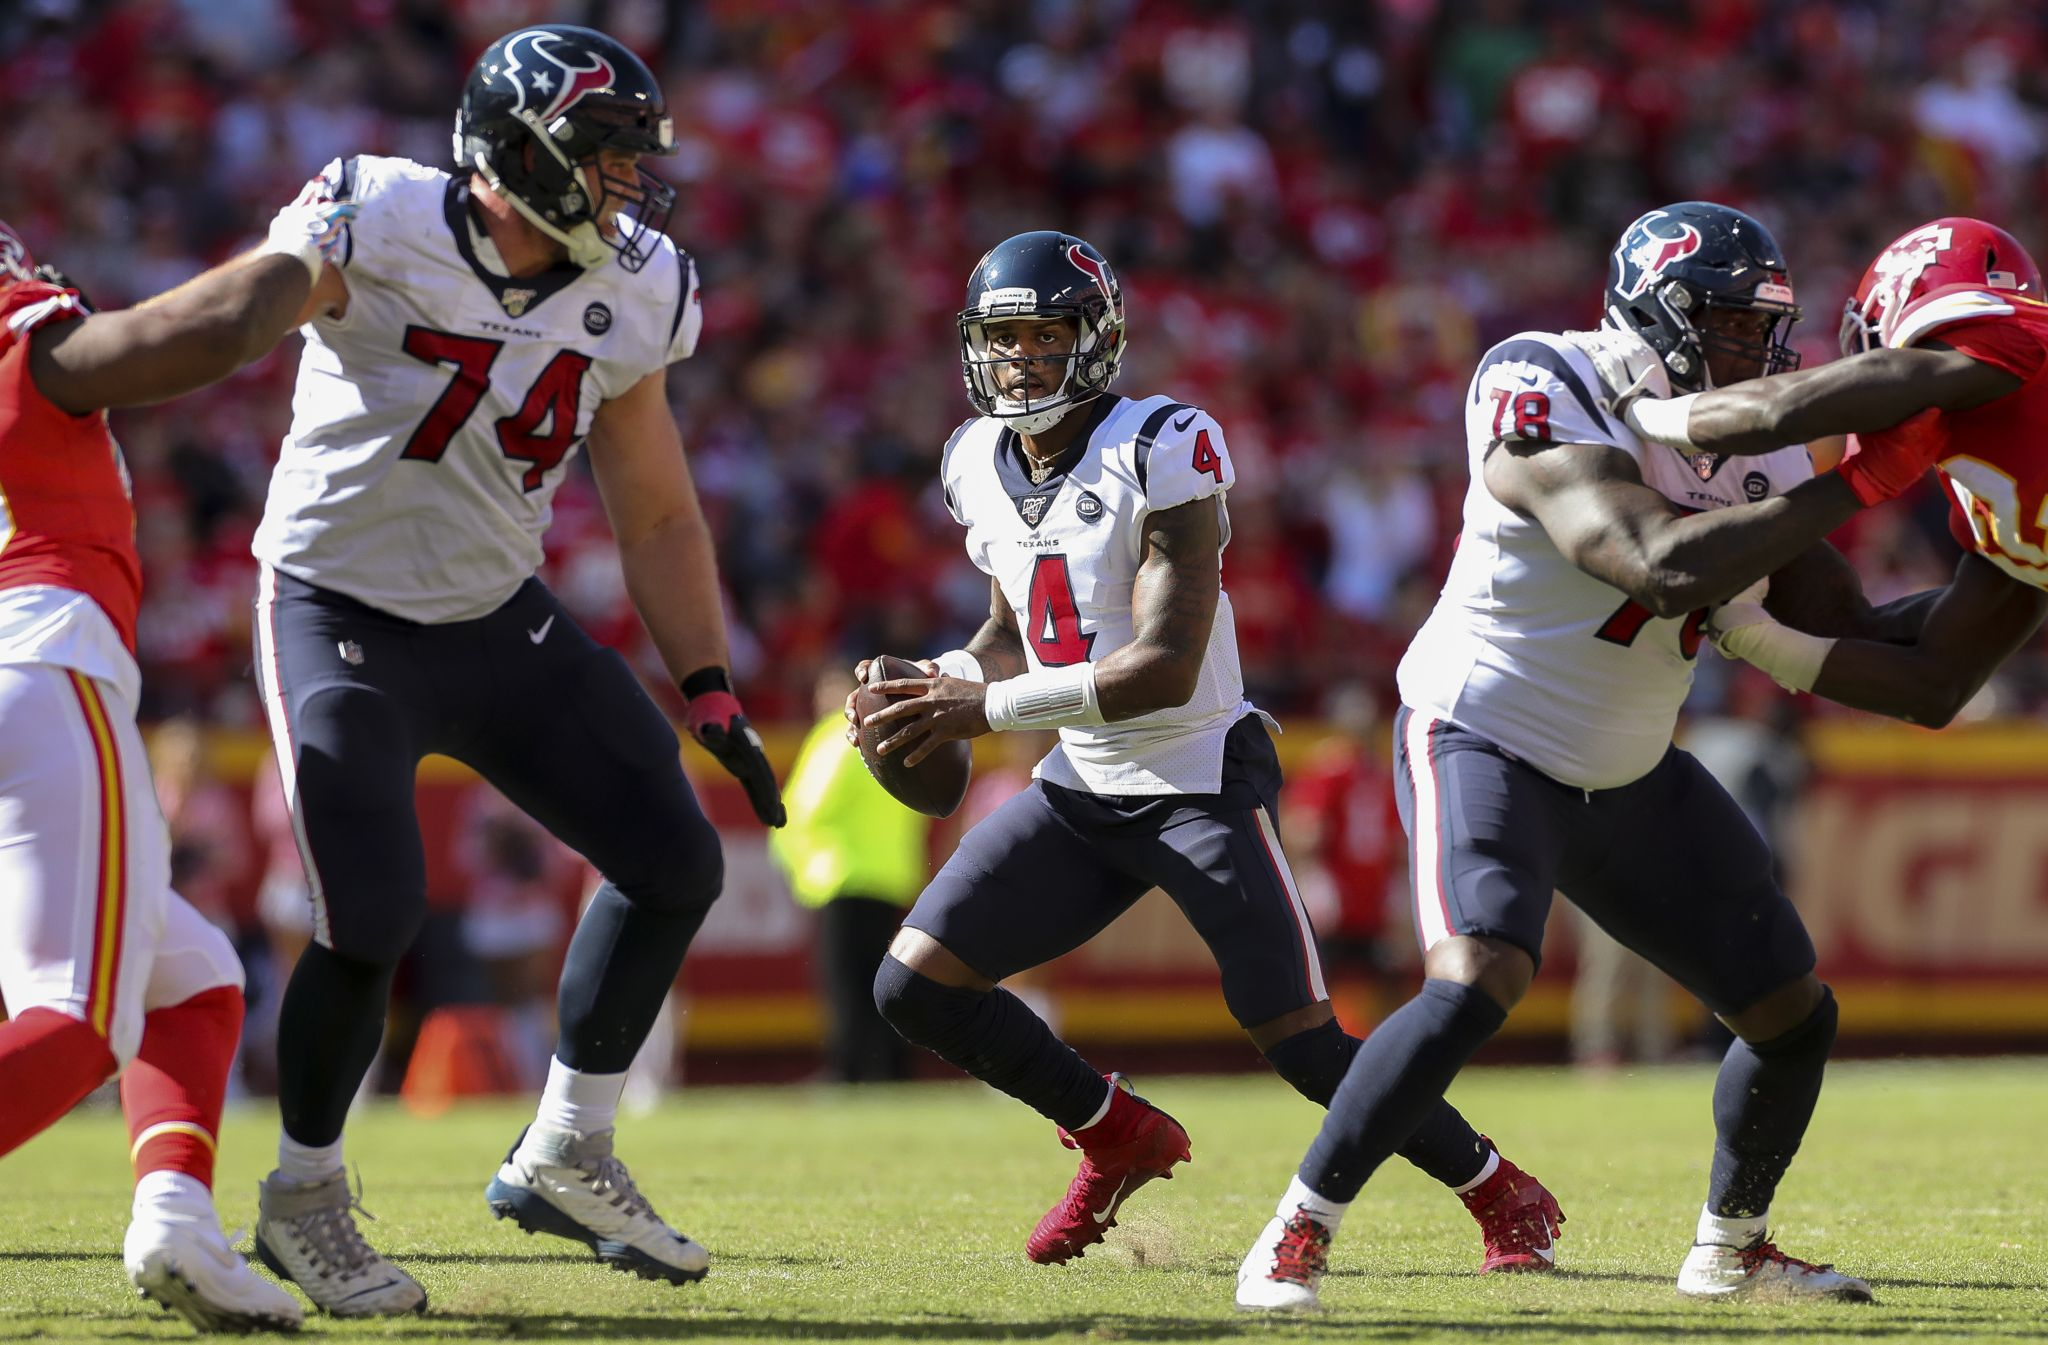 Texans at Chiefs: John McClain's scouting report